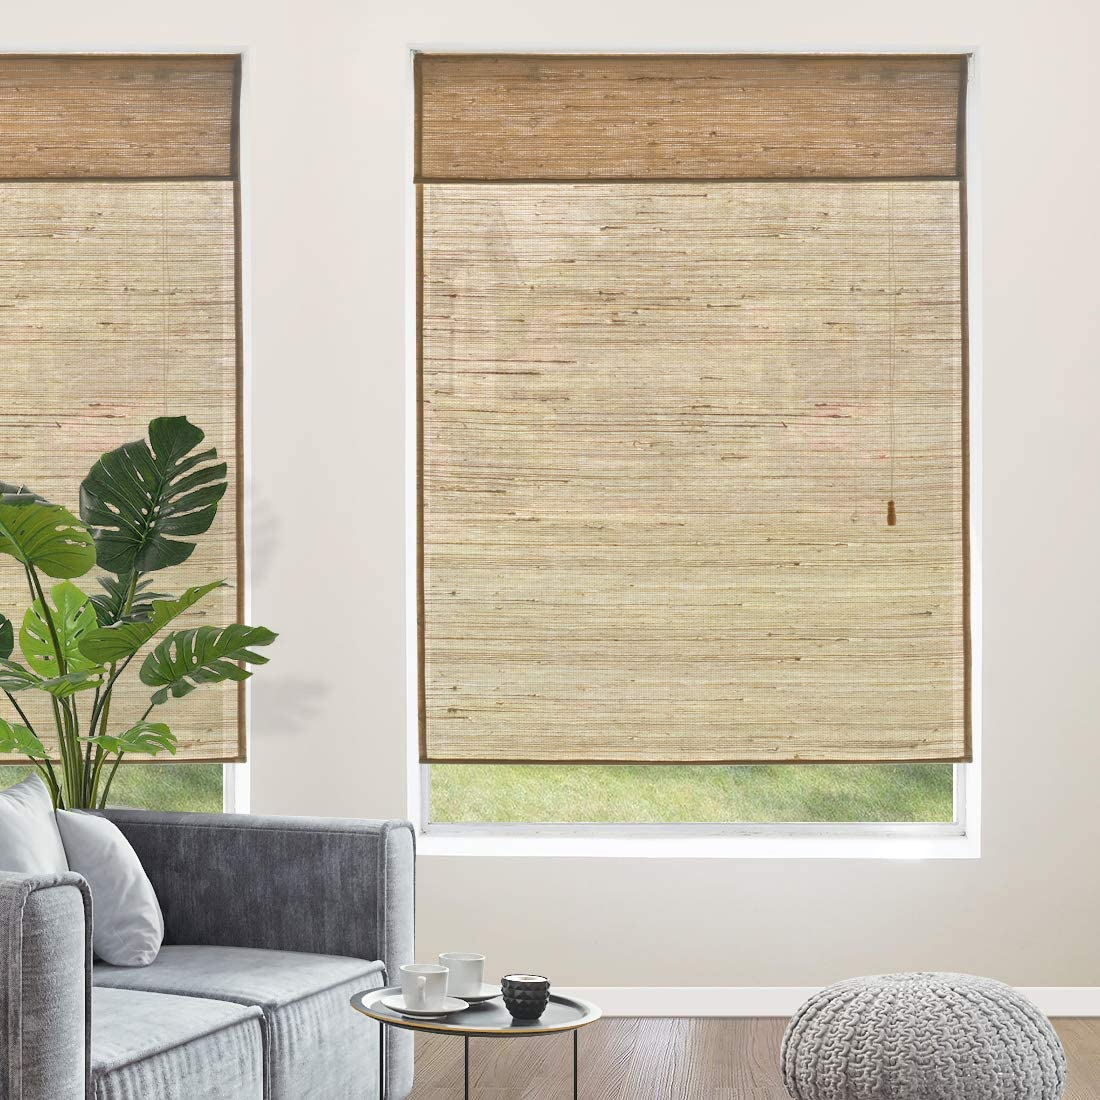 Yoolax Natural Roman Shades,100 Reed Woven Wood Window Blinds Handmade Fabric Light Filtering Shades for Home Restaurant Office Reed Yellow